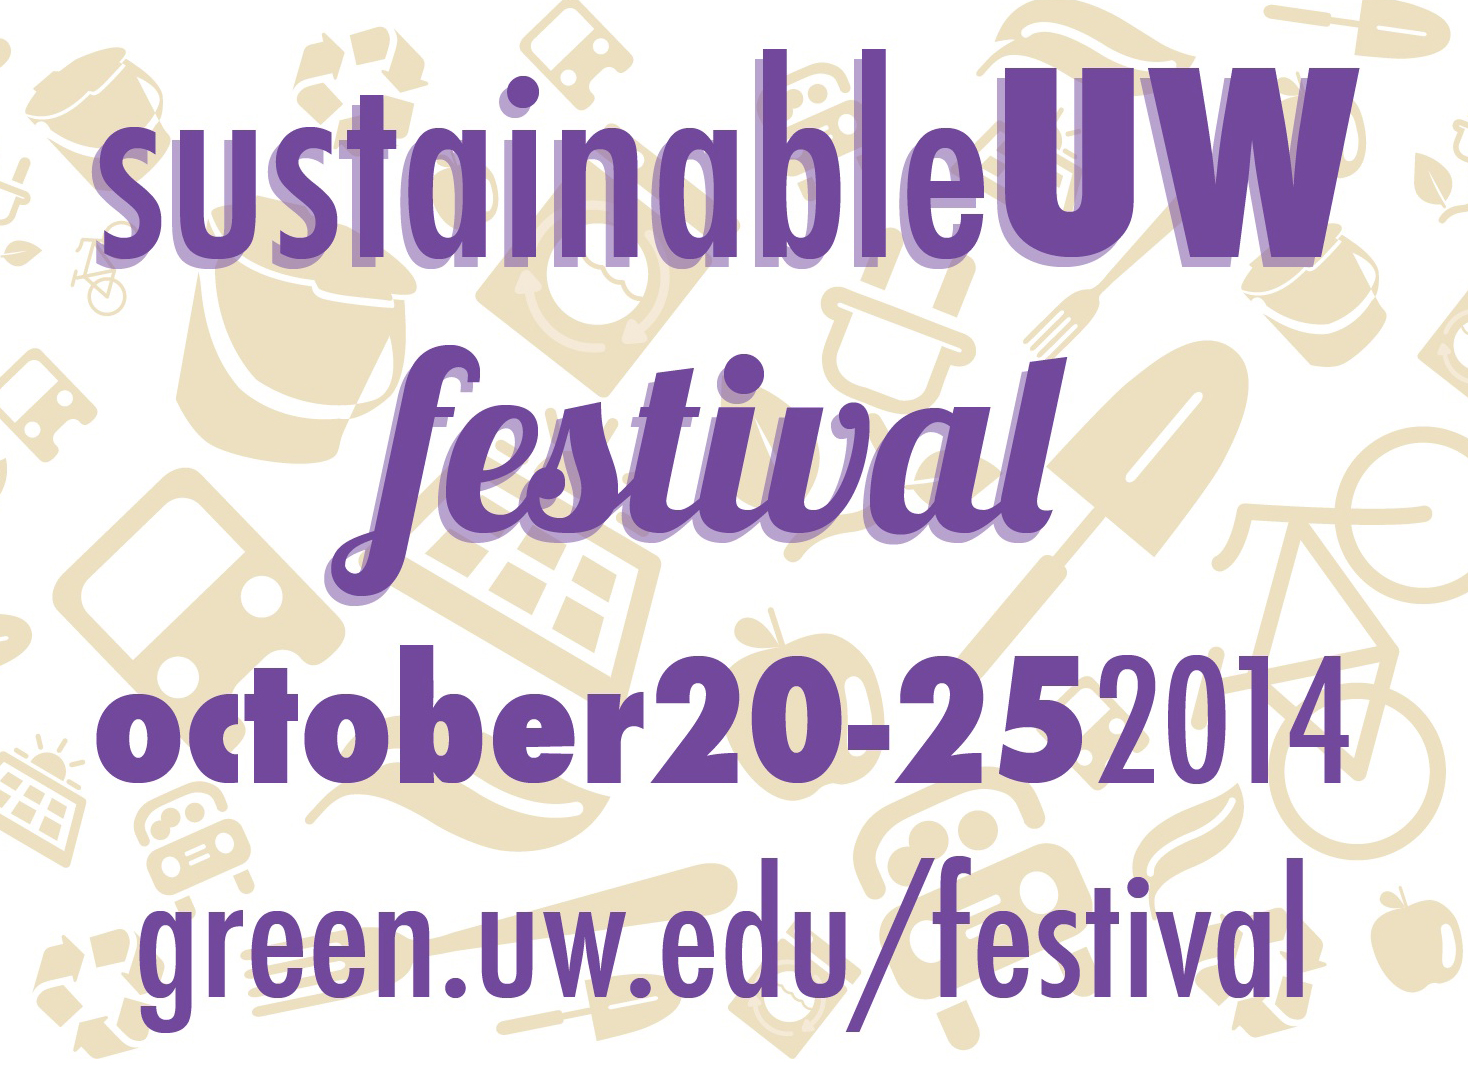 SustainableUW Festival logo